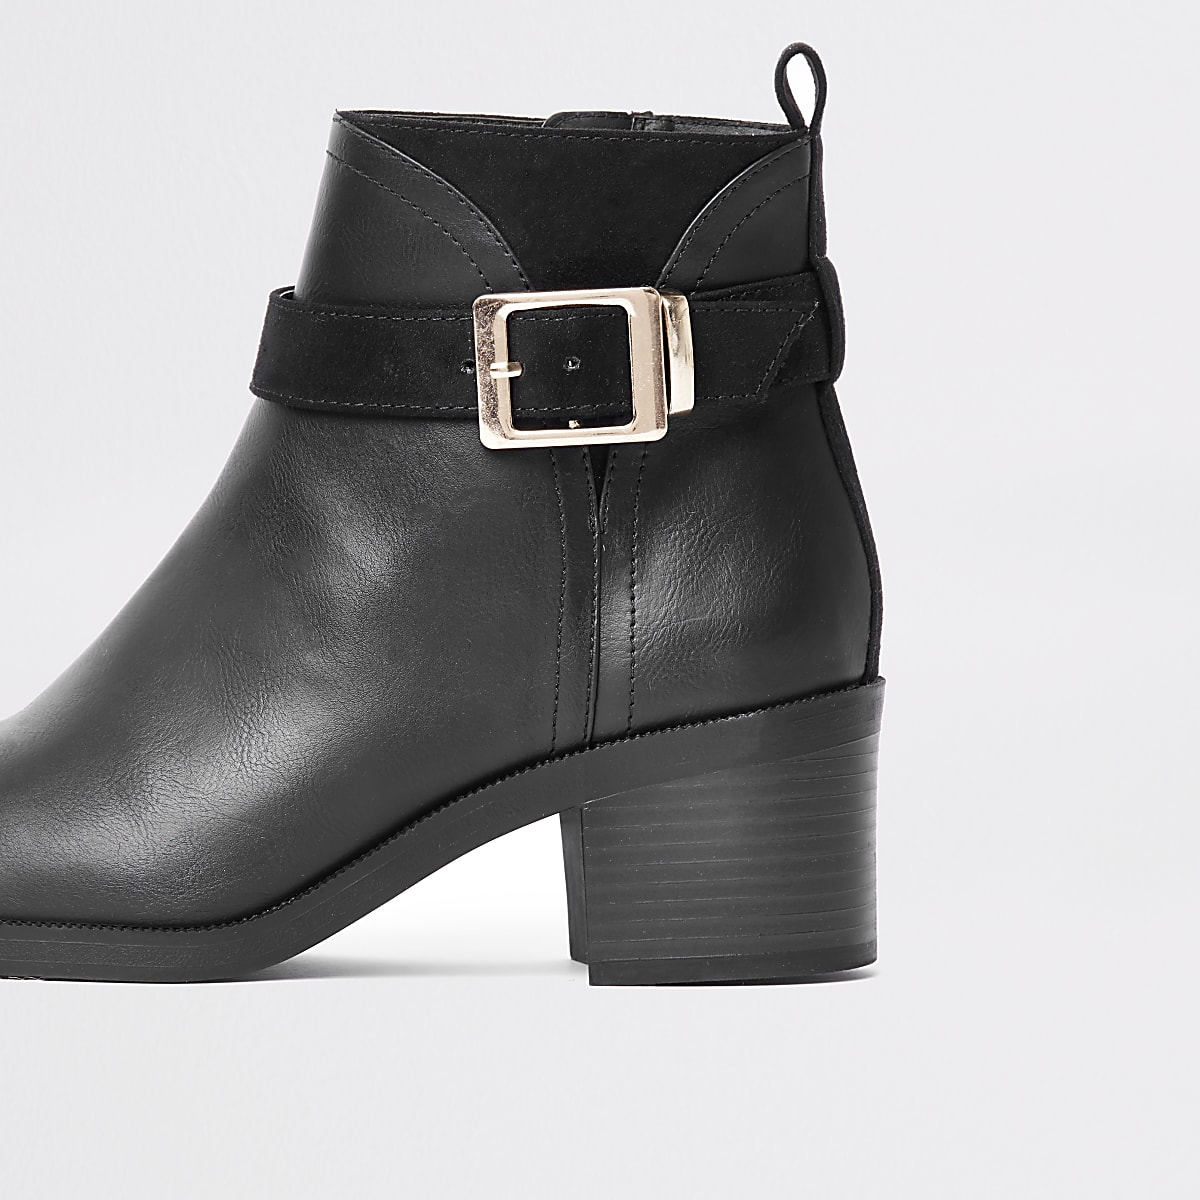 1d33485f5b9 Black buckle detail ankle boots - Boots - Shoes   Boots - women